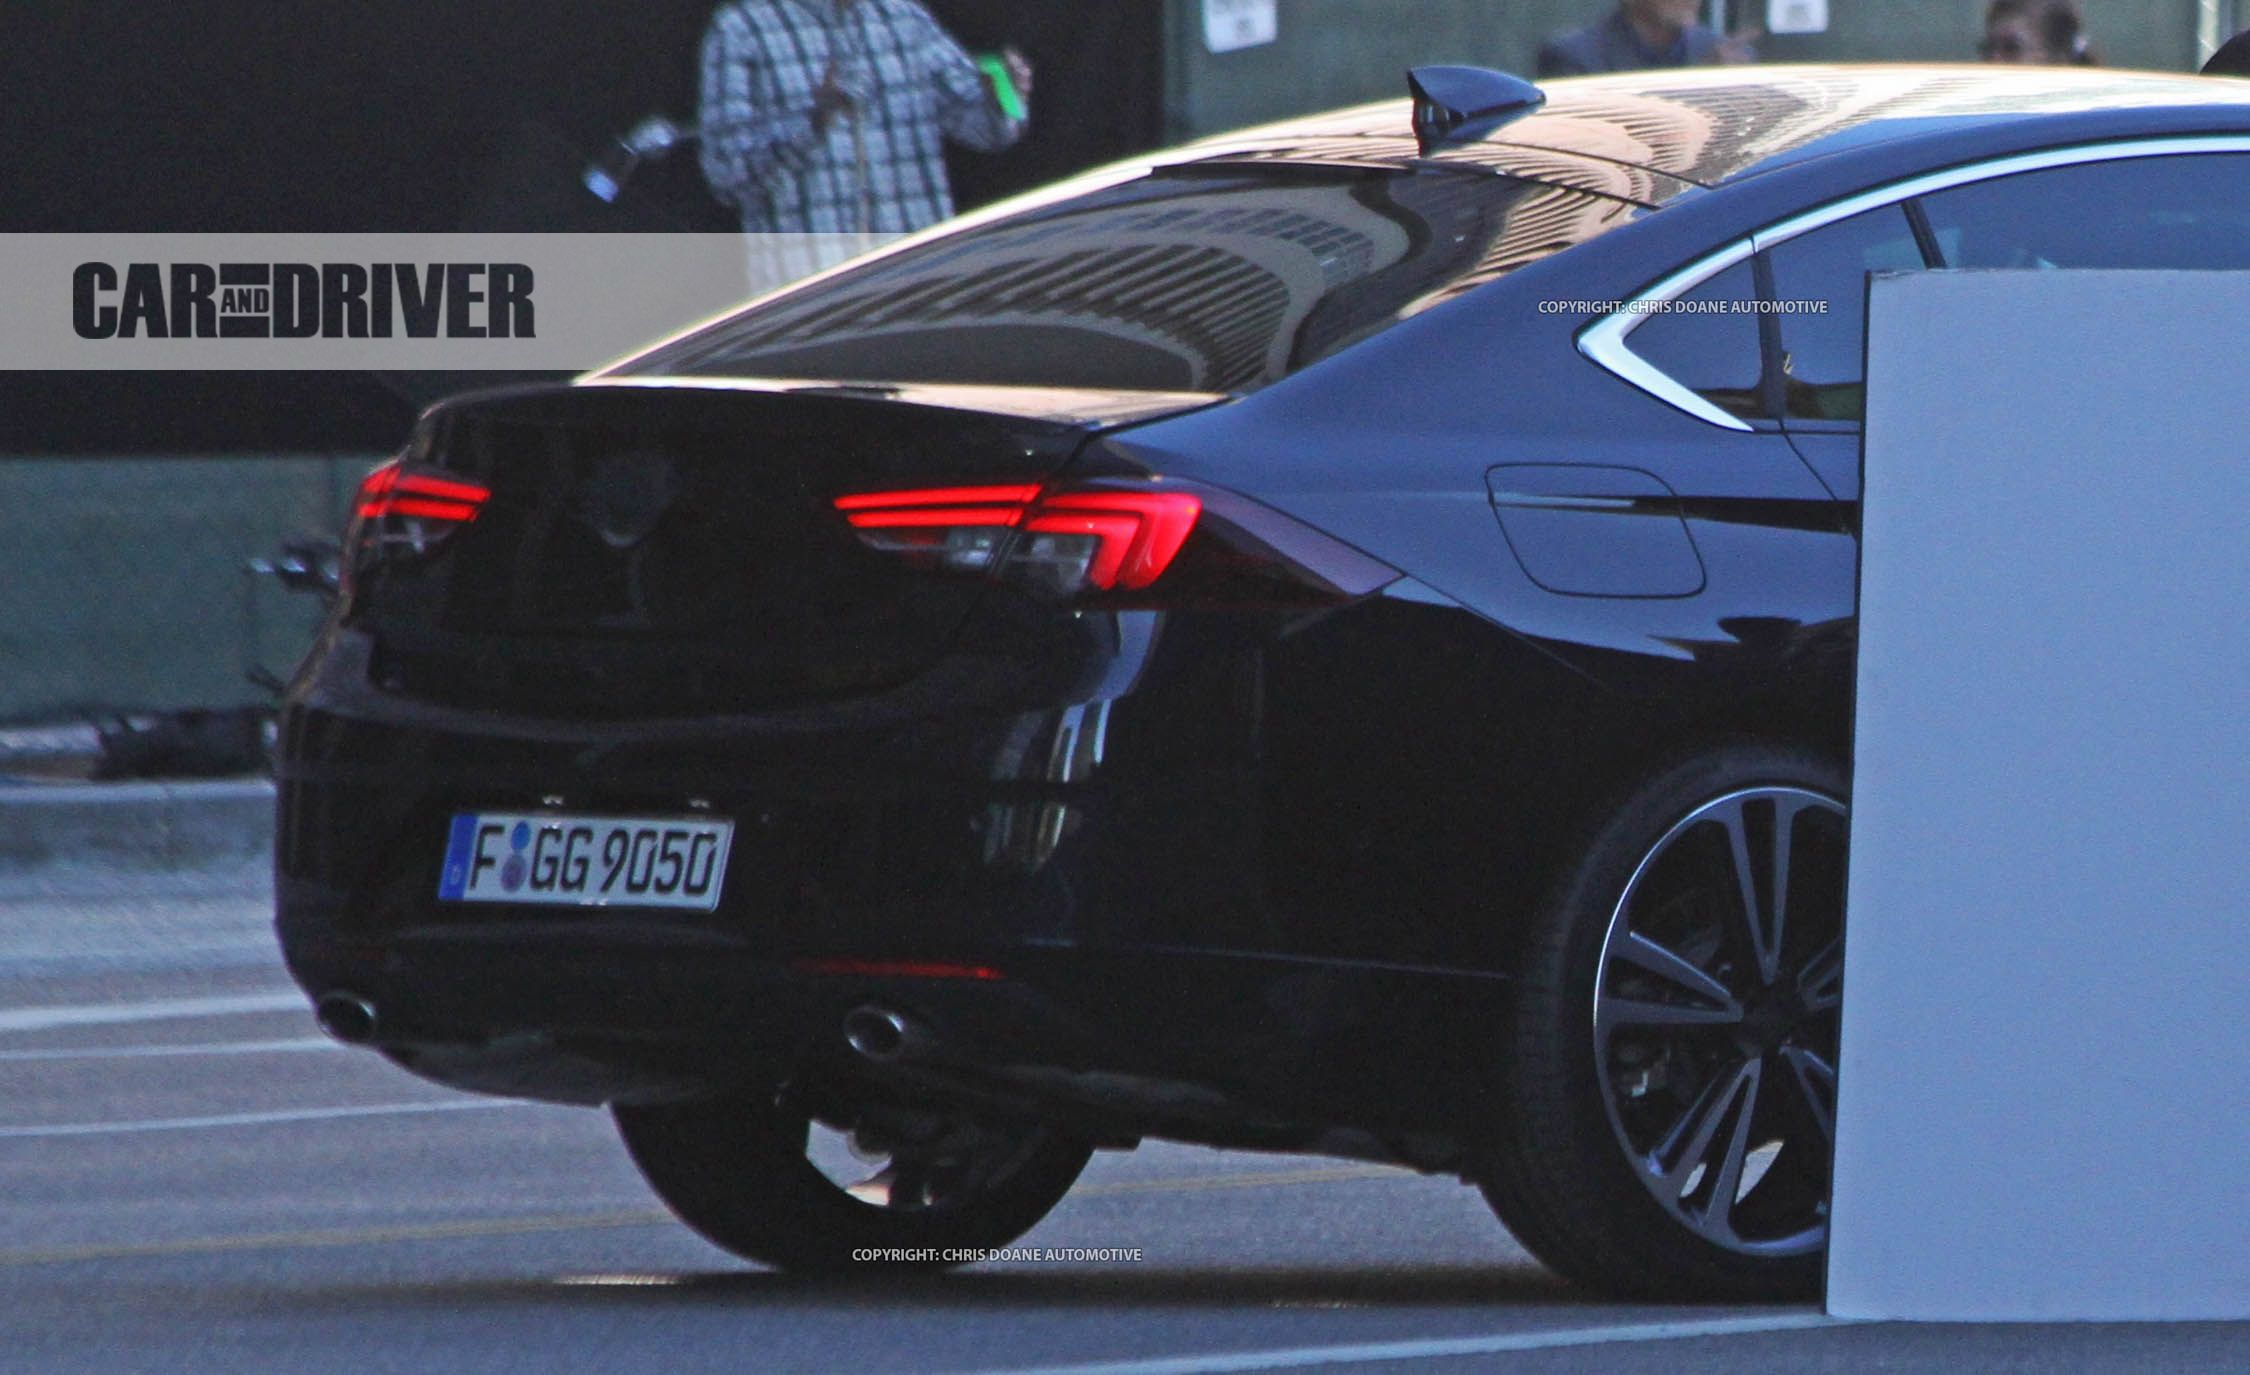 2018 Buick Regal Photo Gallery